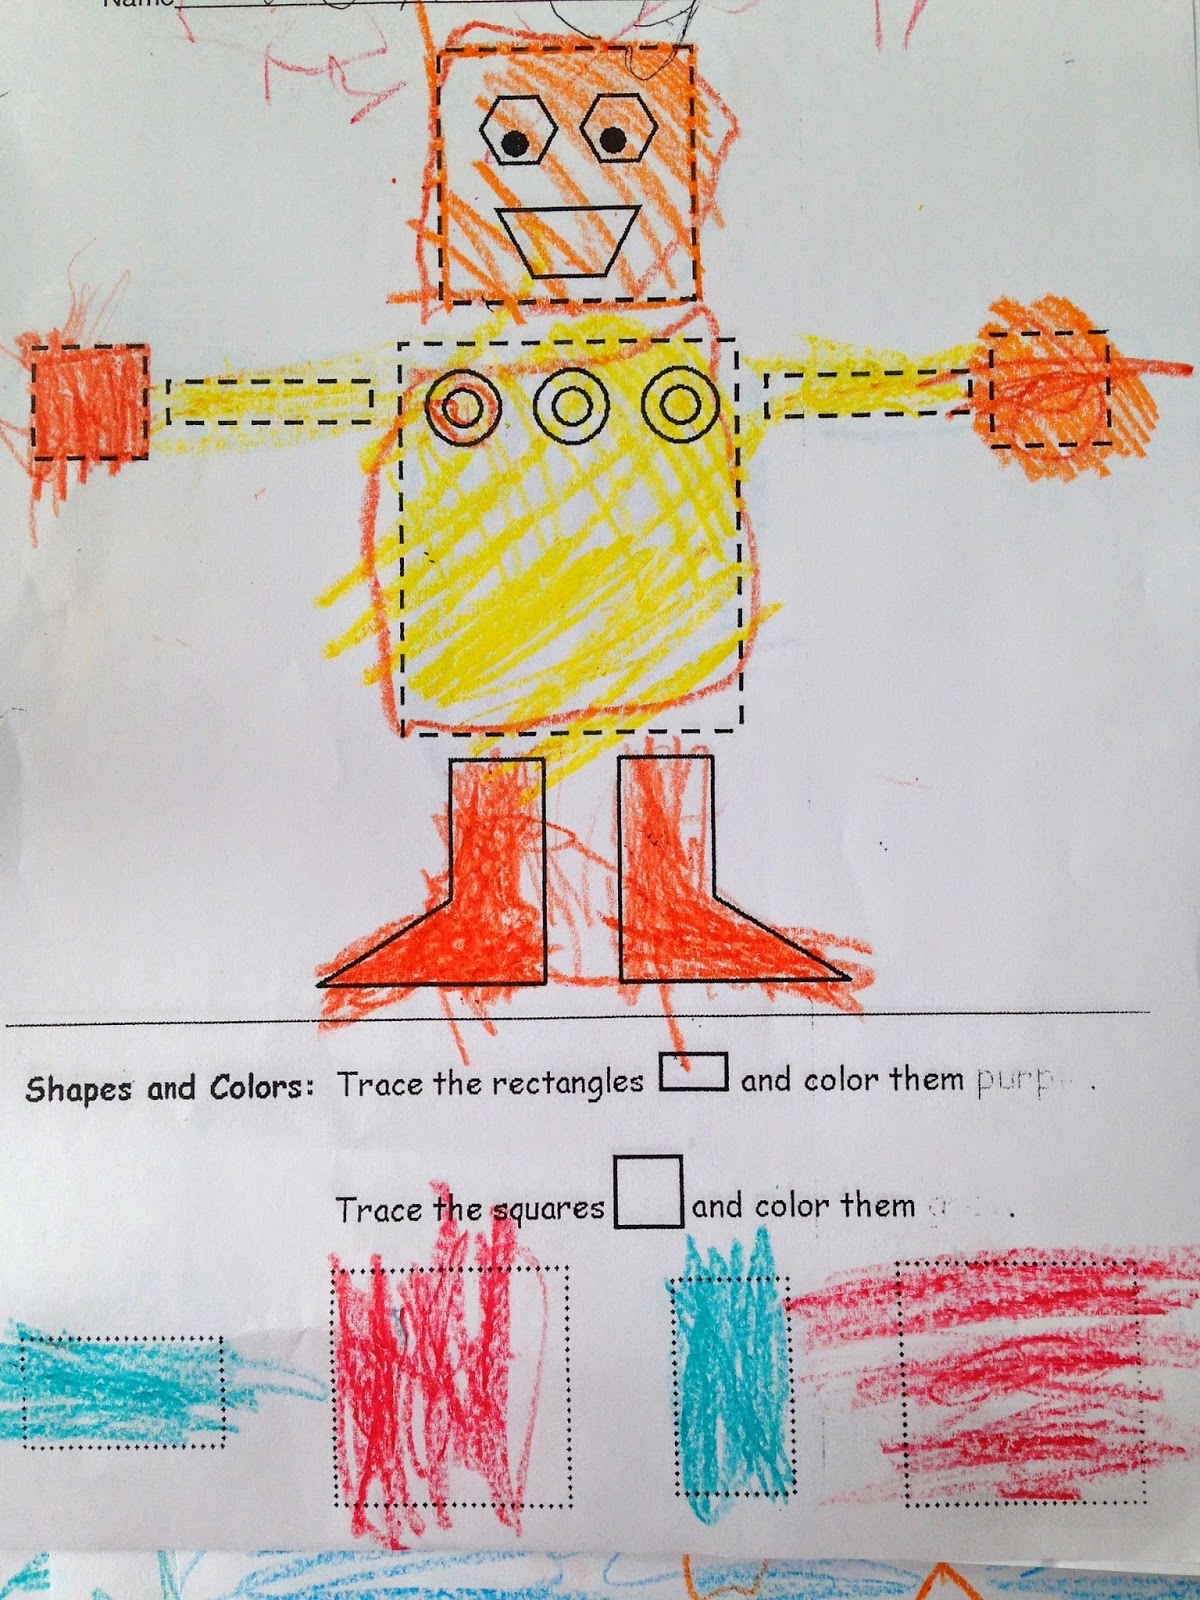 Keep Calm And Teach On Community Helpers Fire Prevention Dd Rectangle 1